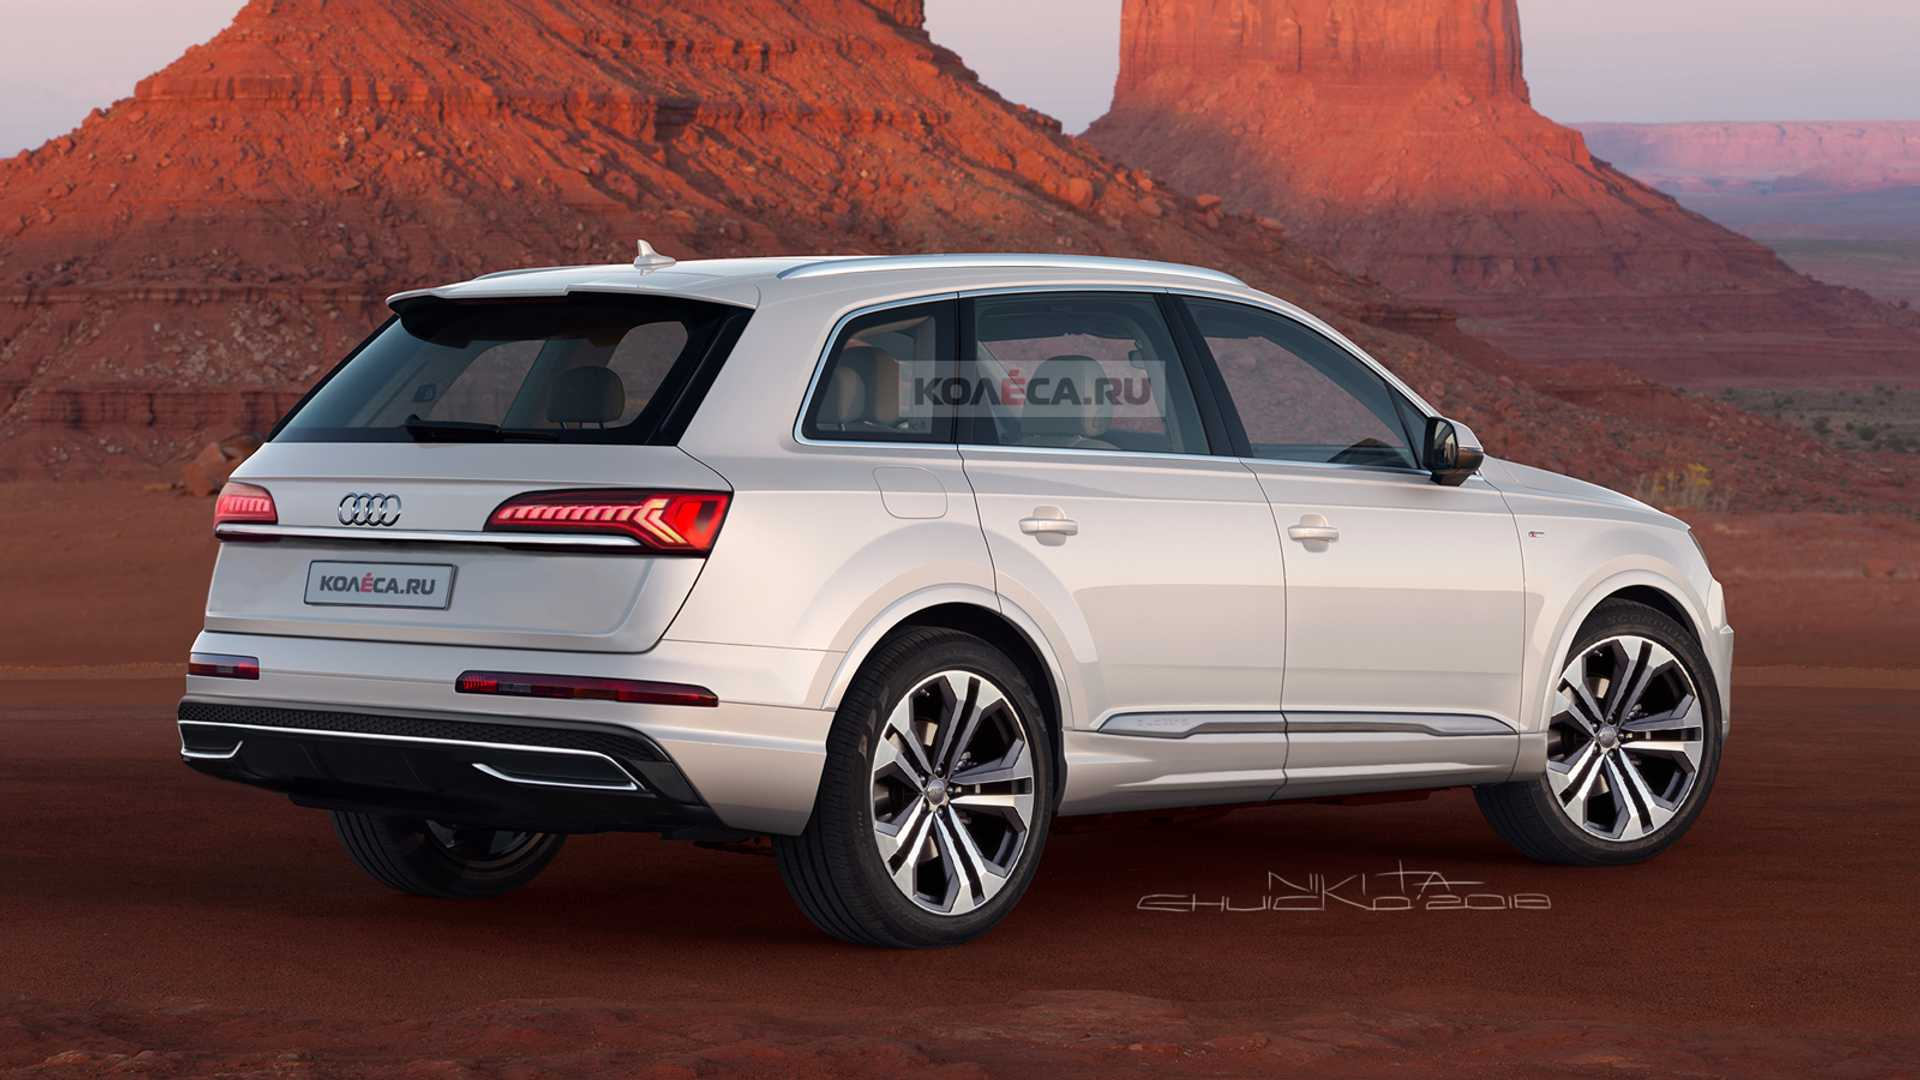 2020 Audi Q7 Review.Audi Q7 Facelift 2020 2020 Audi Q7 Facelift Video Review